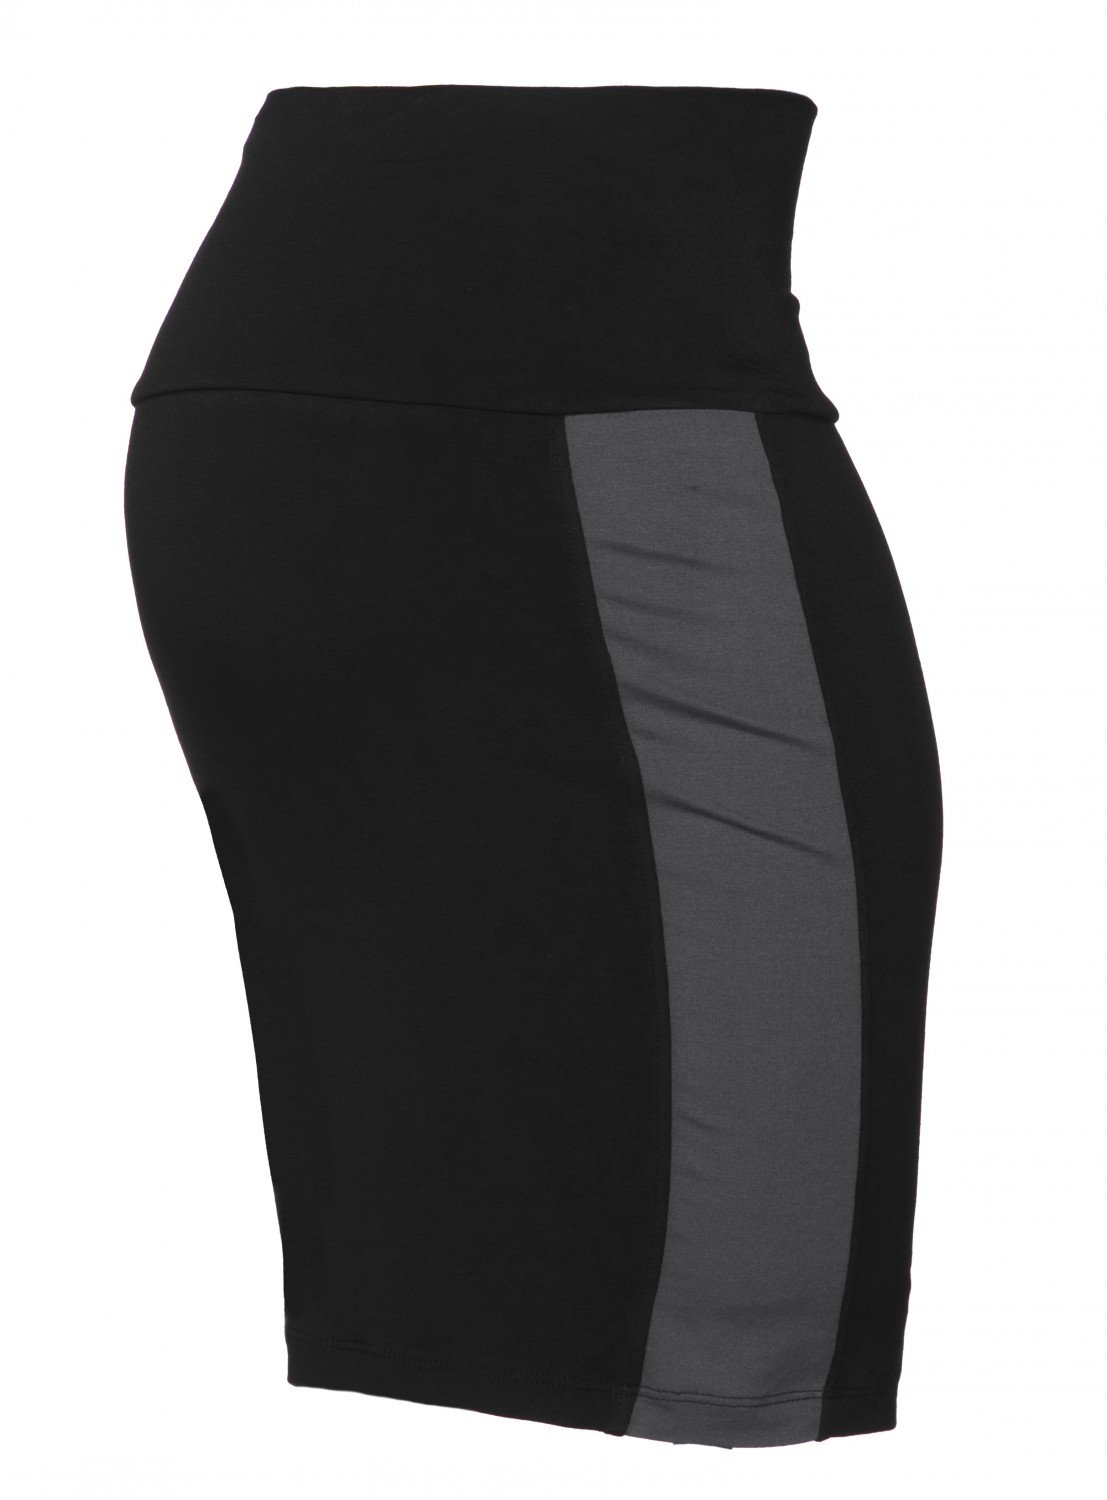 Happy Mama Women's Maternity Colour Block Pencil Skirt Overbump Panel. 554p pregskirt_554